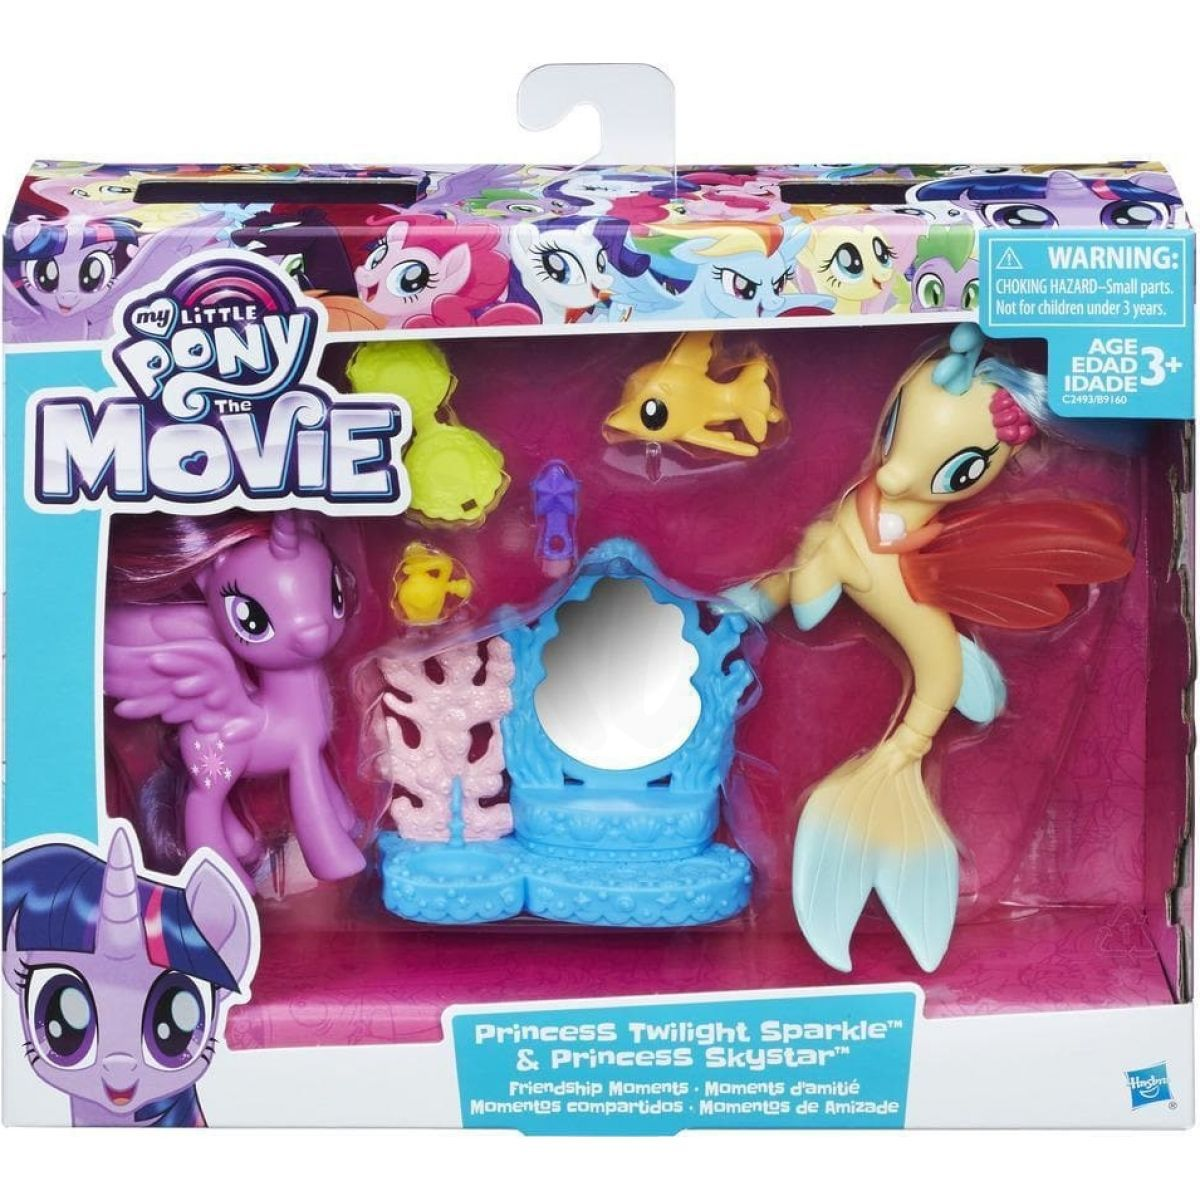 My Little Pony Set 2 Pon 237 Ků S Doplňky Princess Twilight